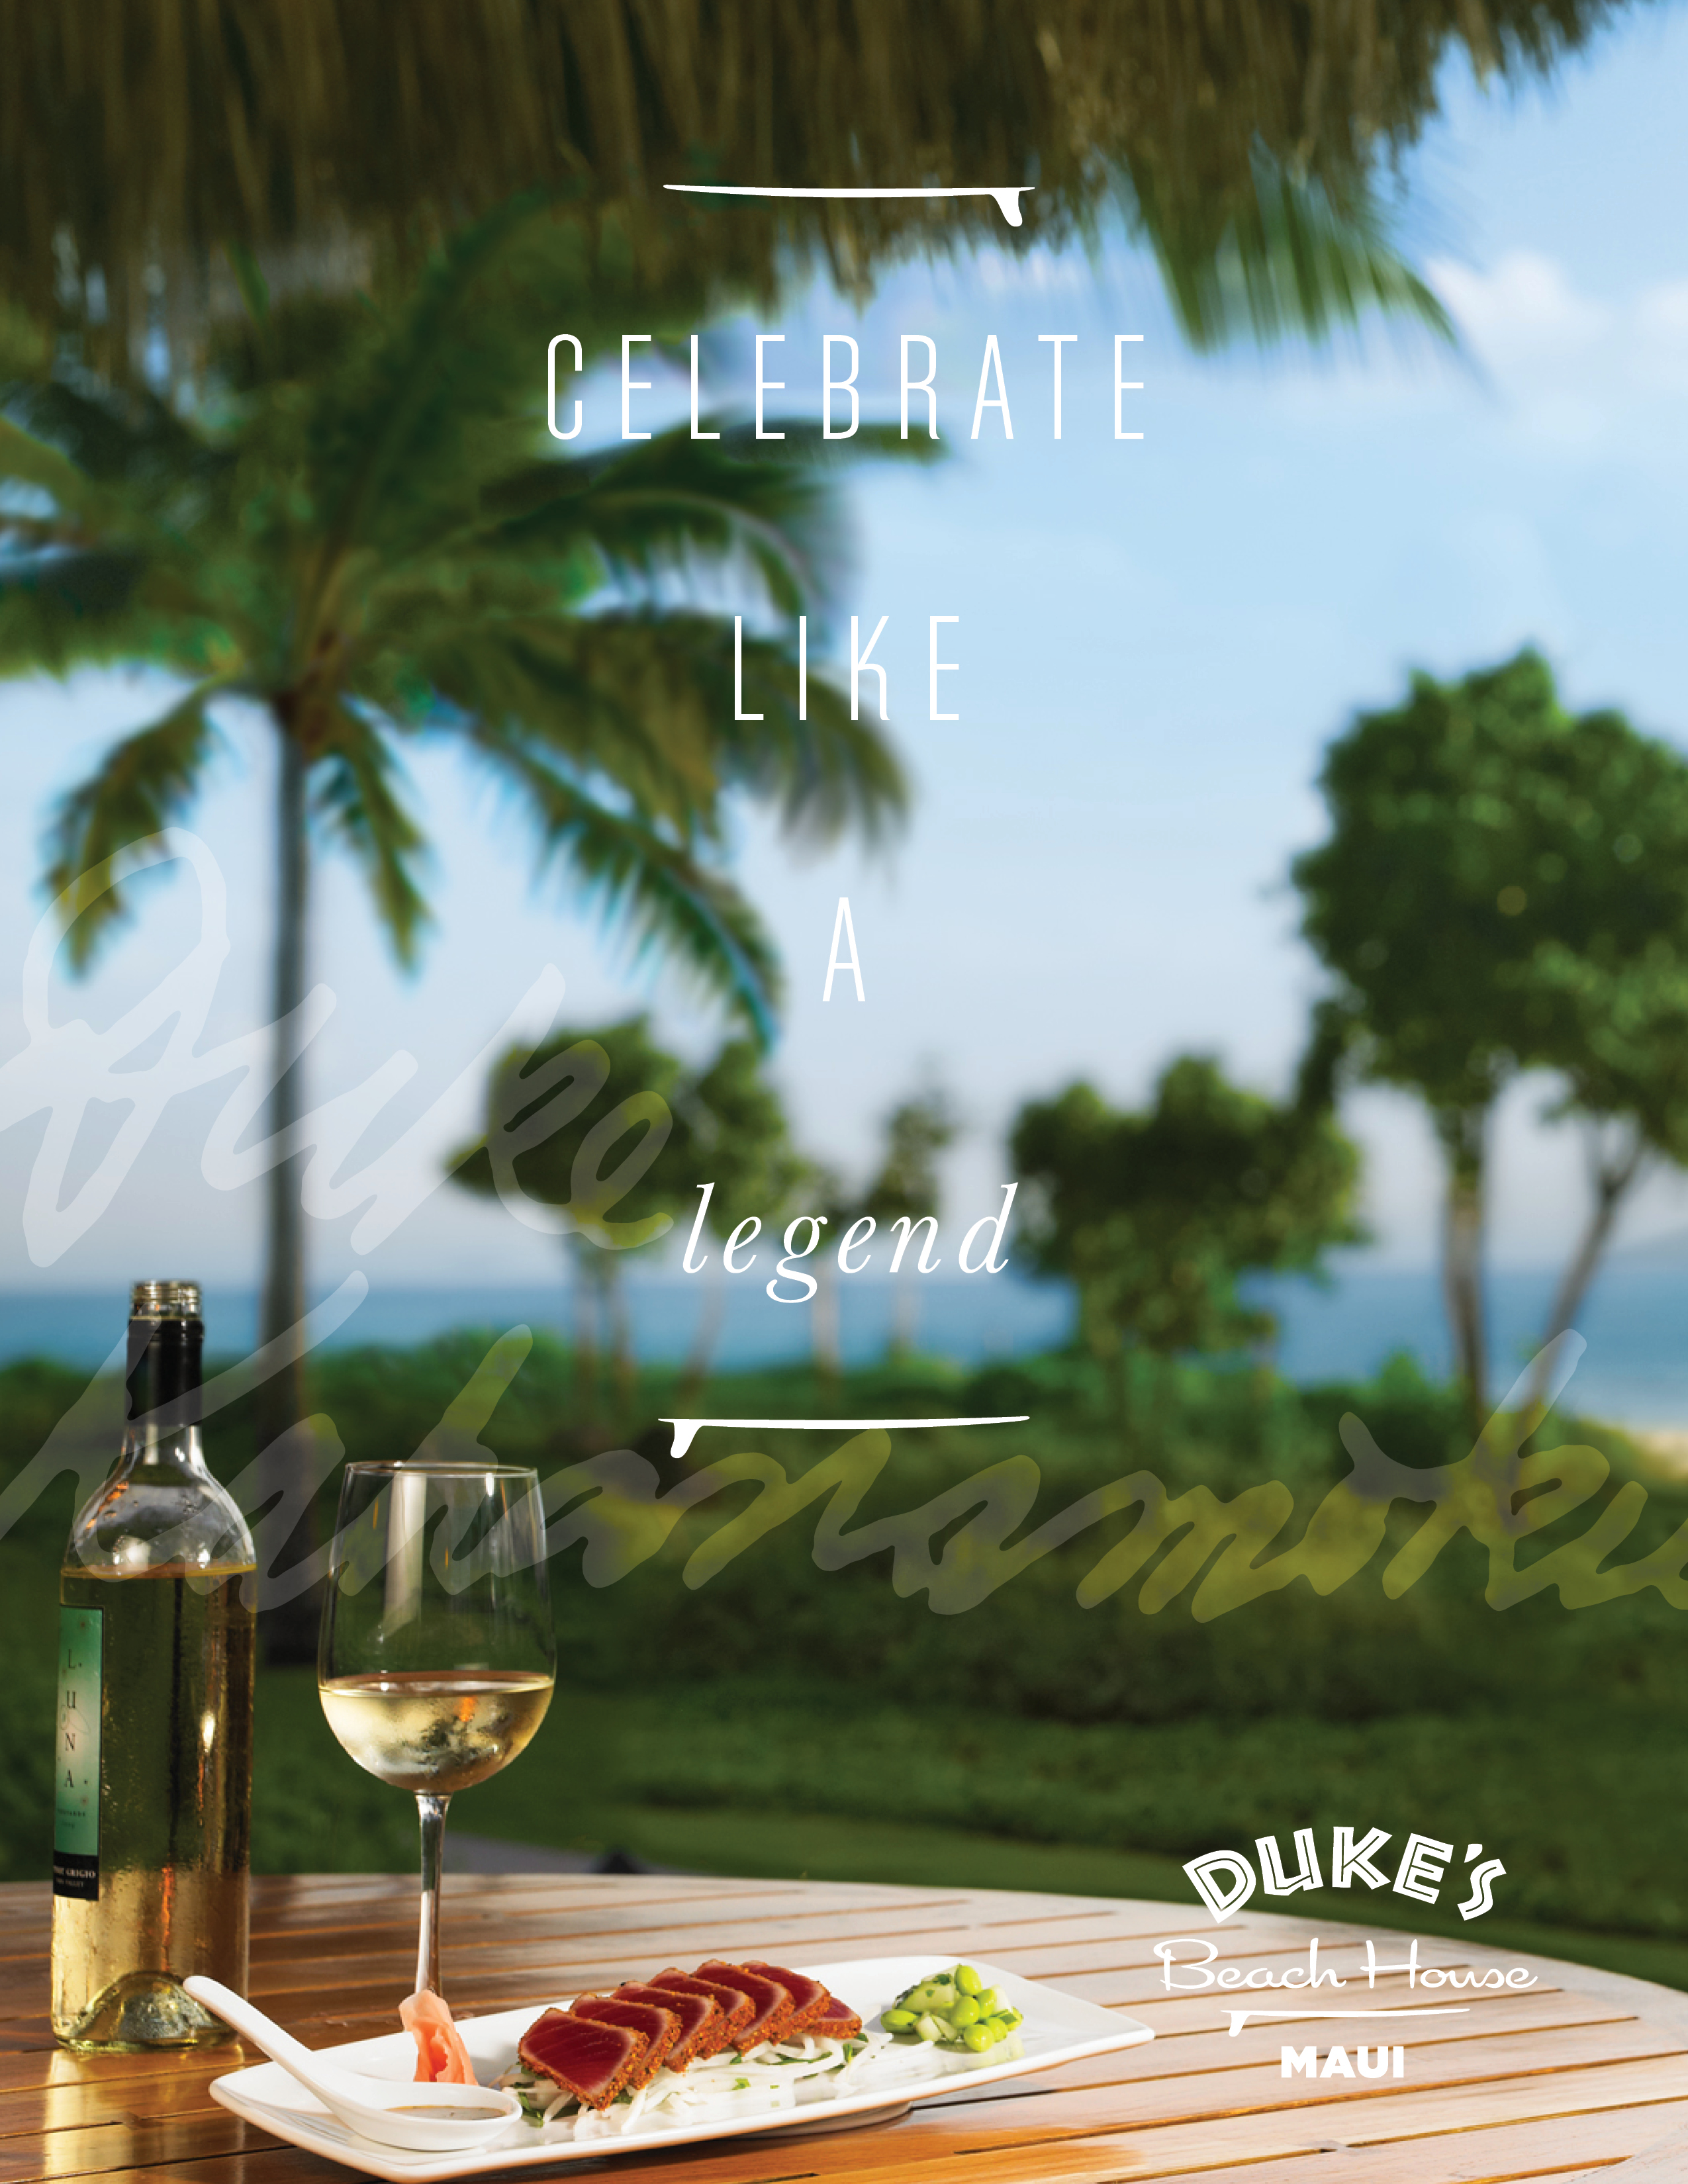 Celebrate like a legend text over image of tuna dish and wine near the beach